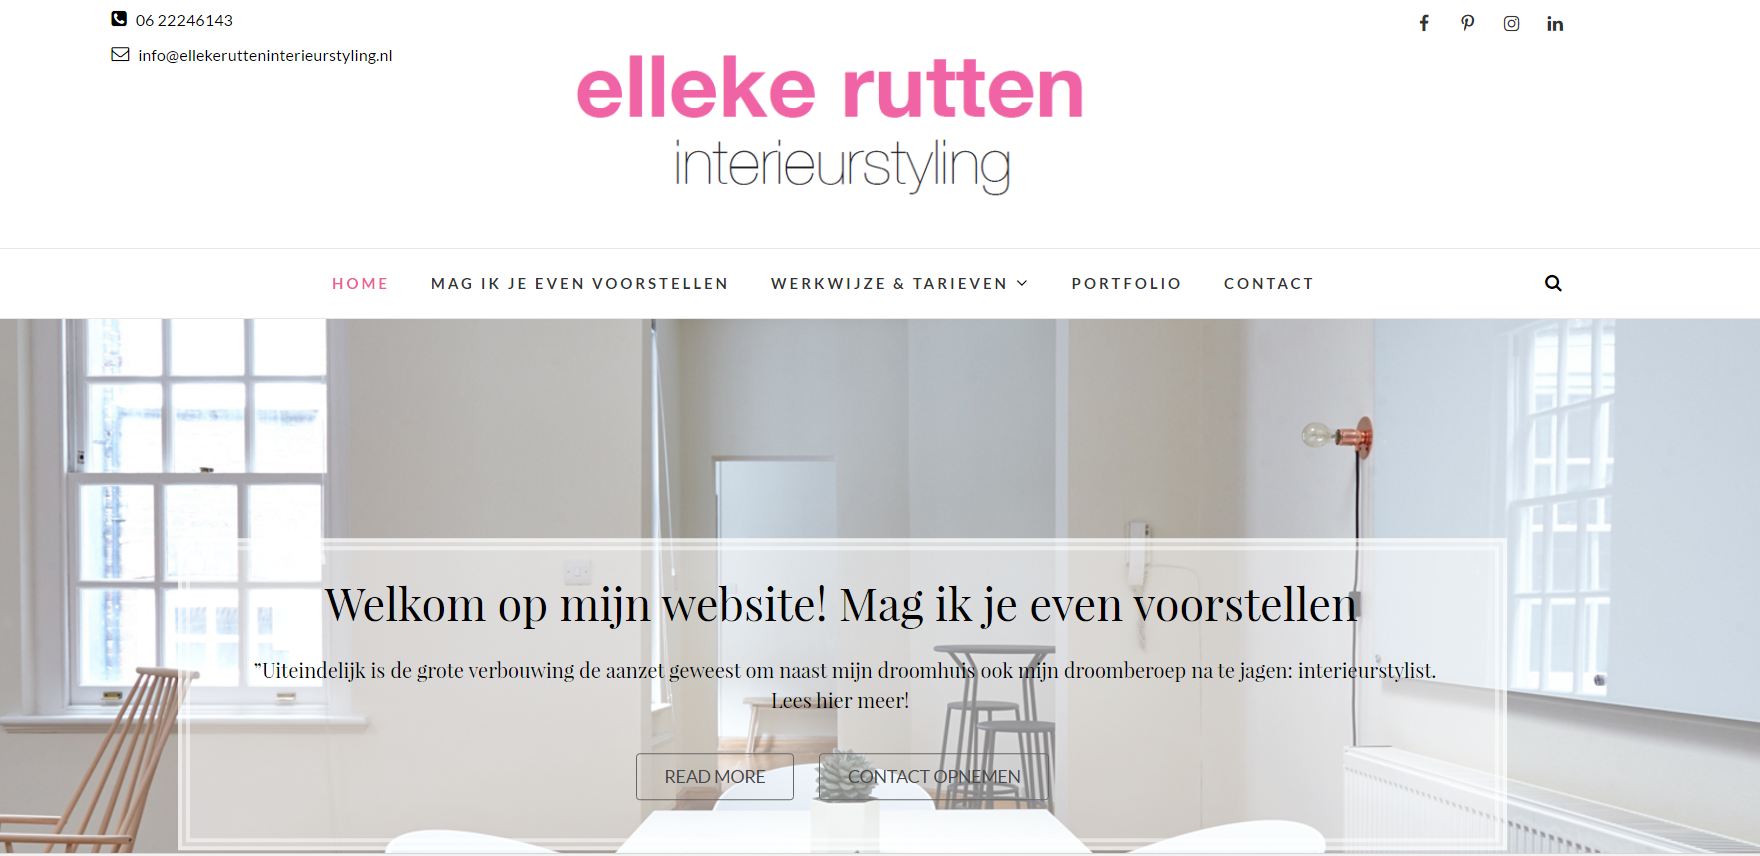 Elleke-rutten-interieurstyling-portfolio-eikhout-marketing